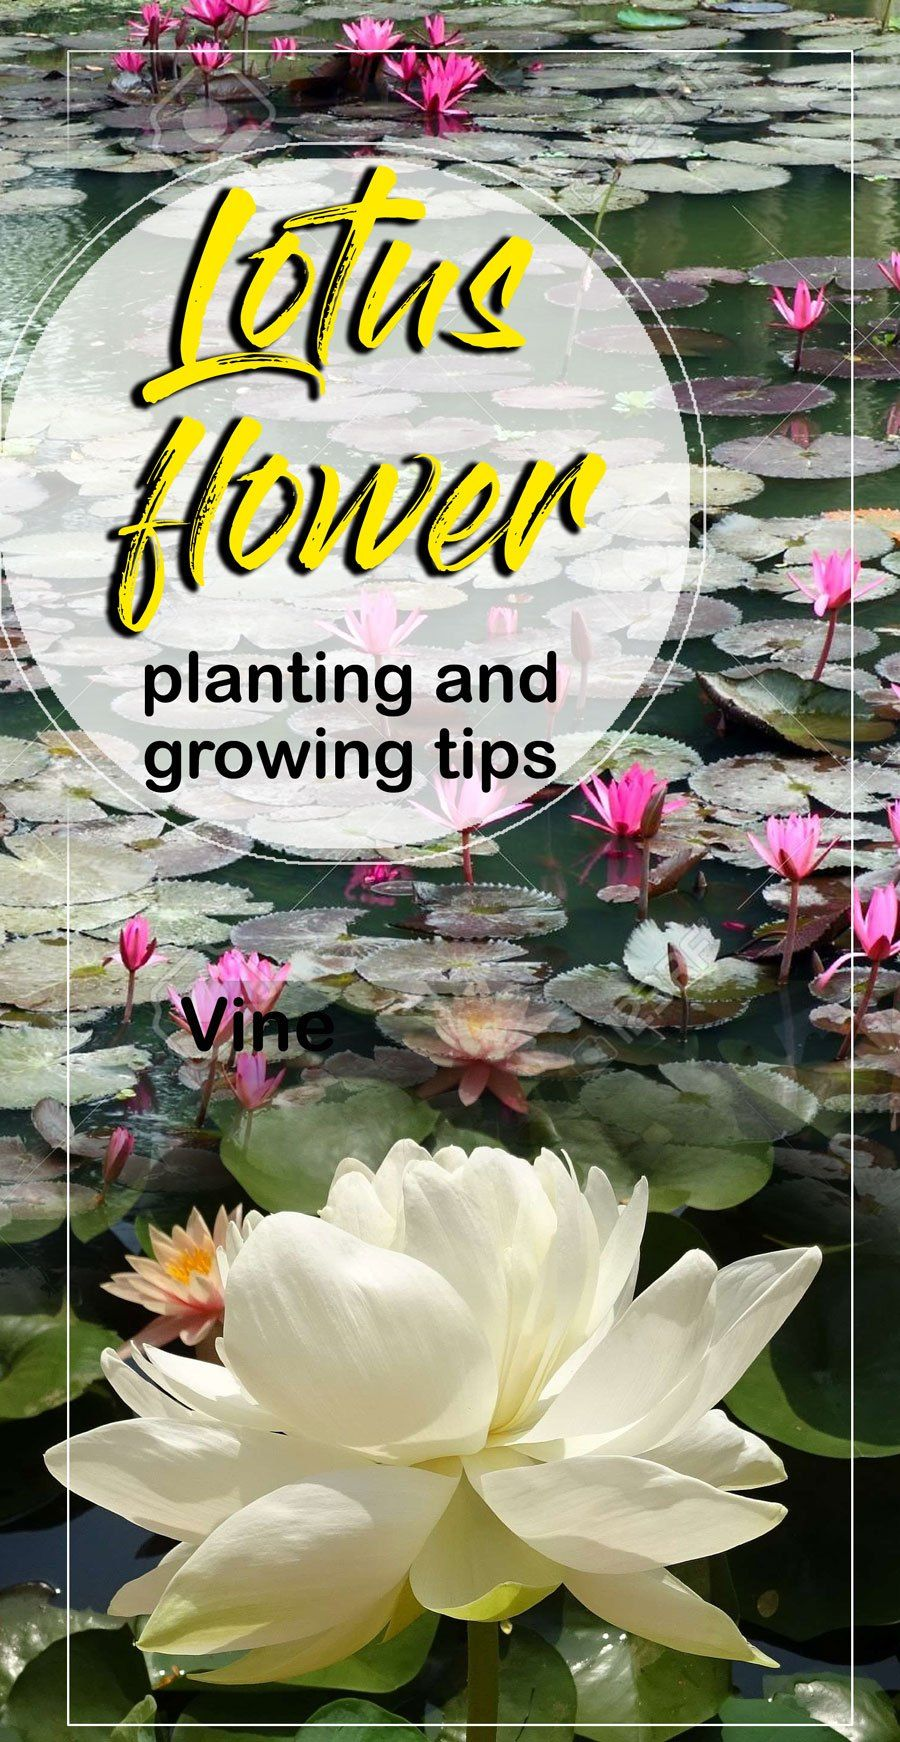 Lotus flower planting and growing tips water gardening pinterest lotus flower planting and growing tips health benefits of lotus naturebring izmirmasajfo